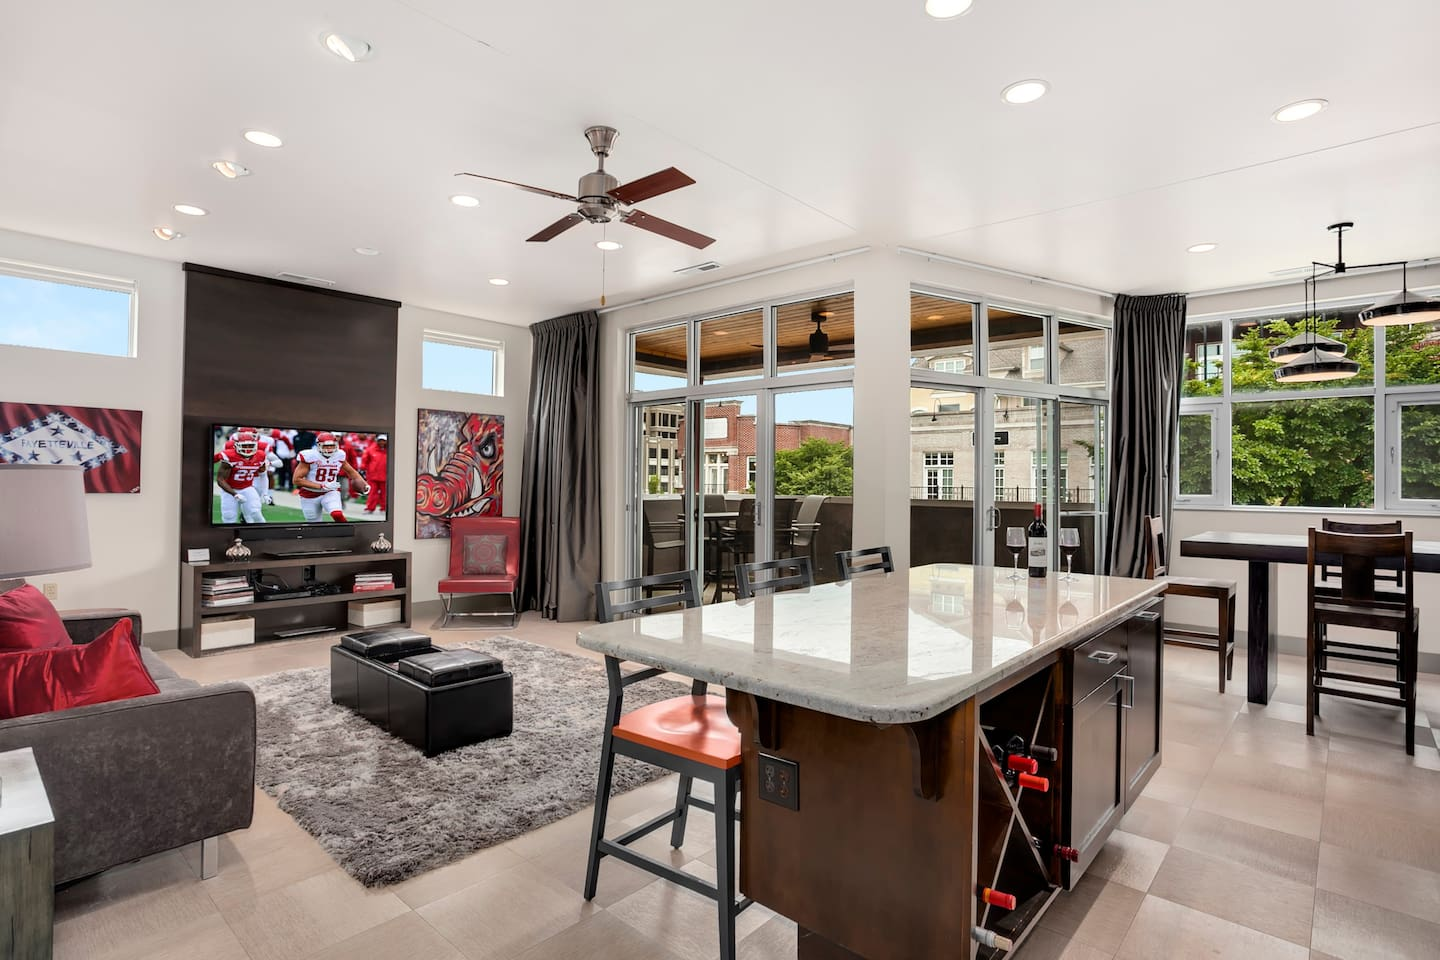 A giant HDTV, floor to ceiling windows, and a red + black decorated living room will have you calling the hogs upon arrival!